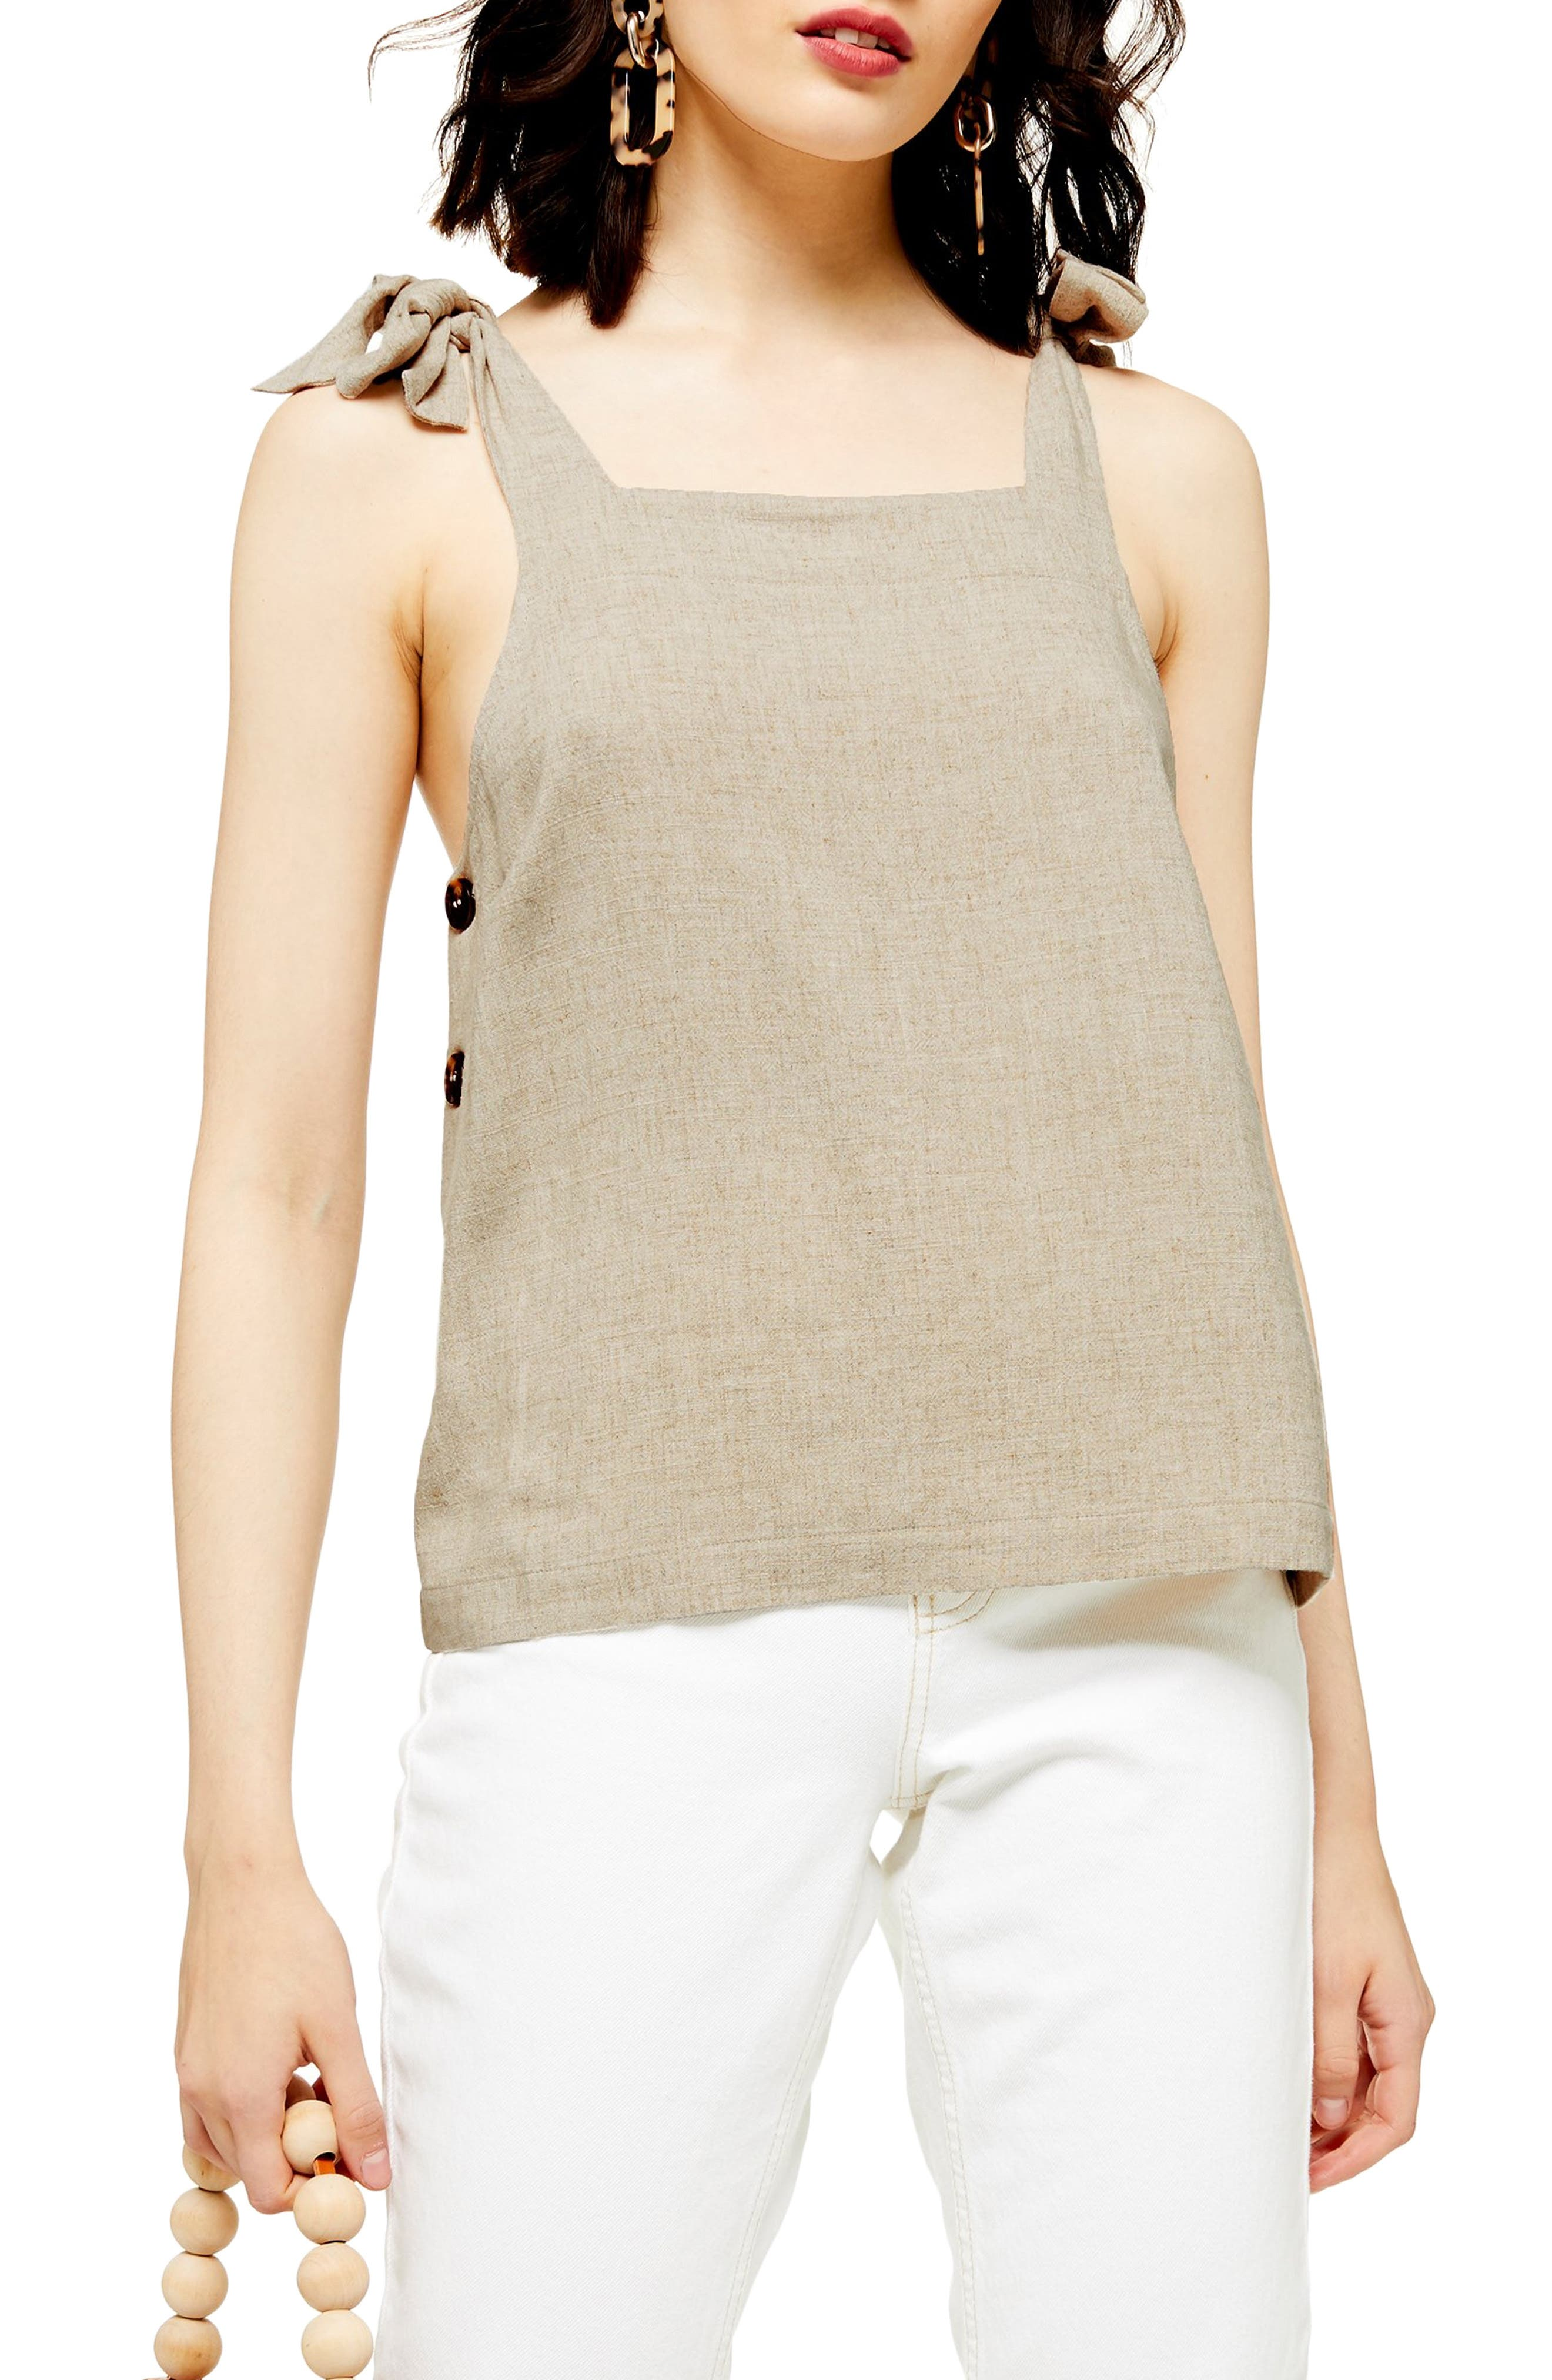 Topshop Polly Tie Shoulder Camisole, US (fits like 16-18) - Beige